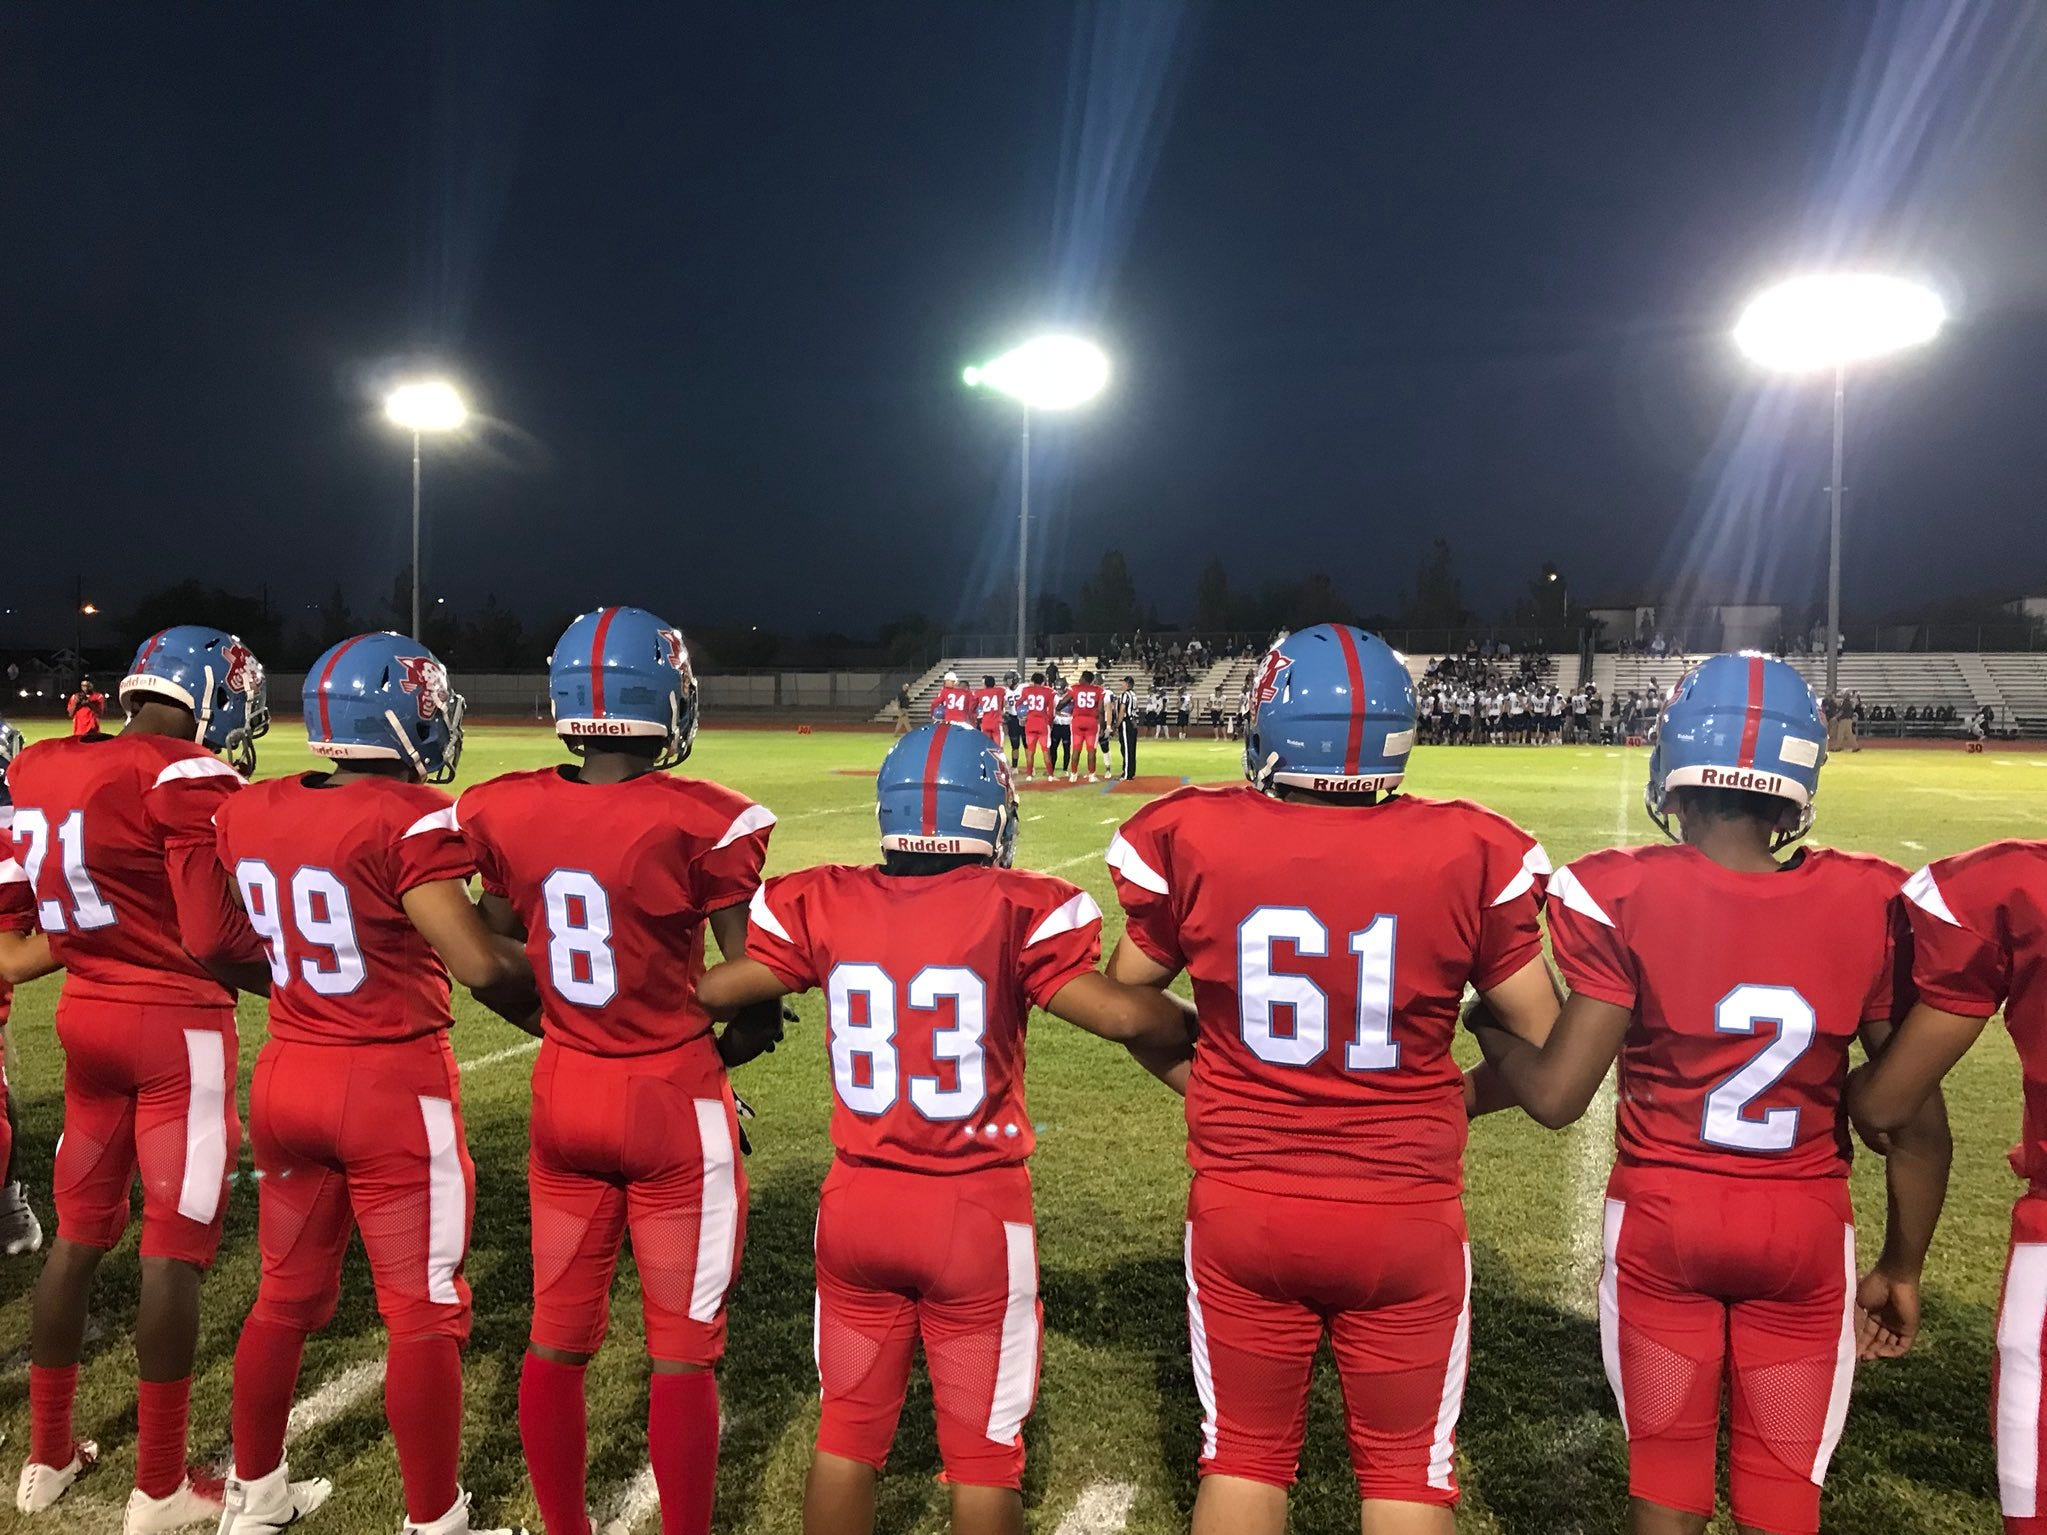 Phoenix South Mountain gets ready for its home game against Cave Creek Cactus Shadows on Friday, Sept. 14, 2018.